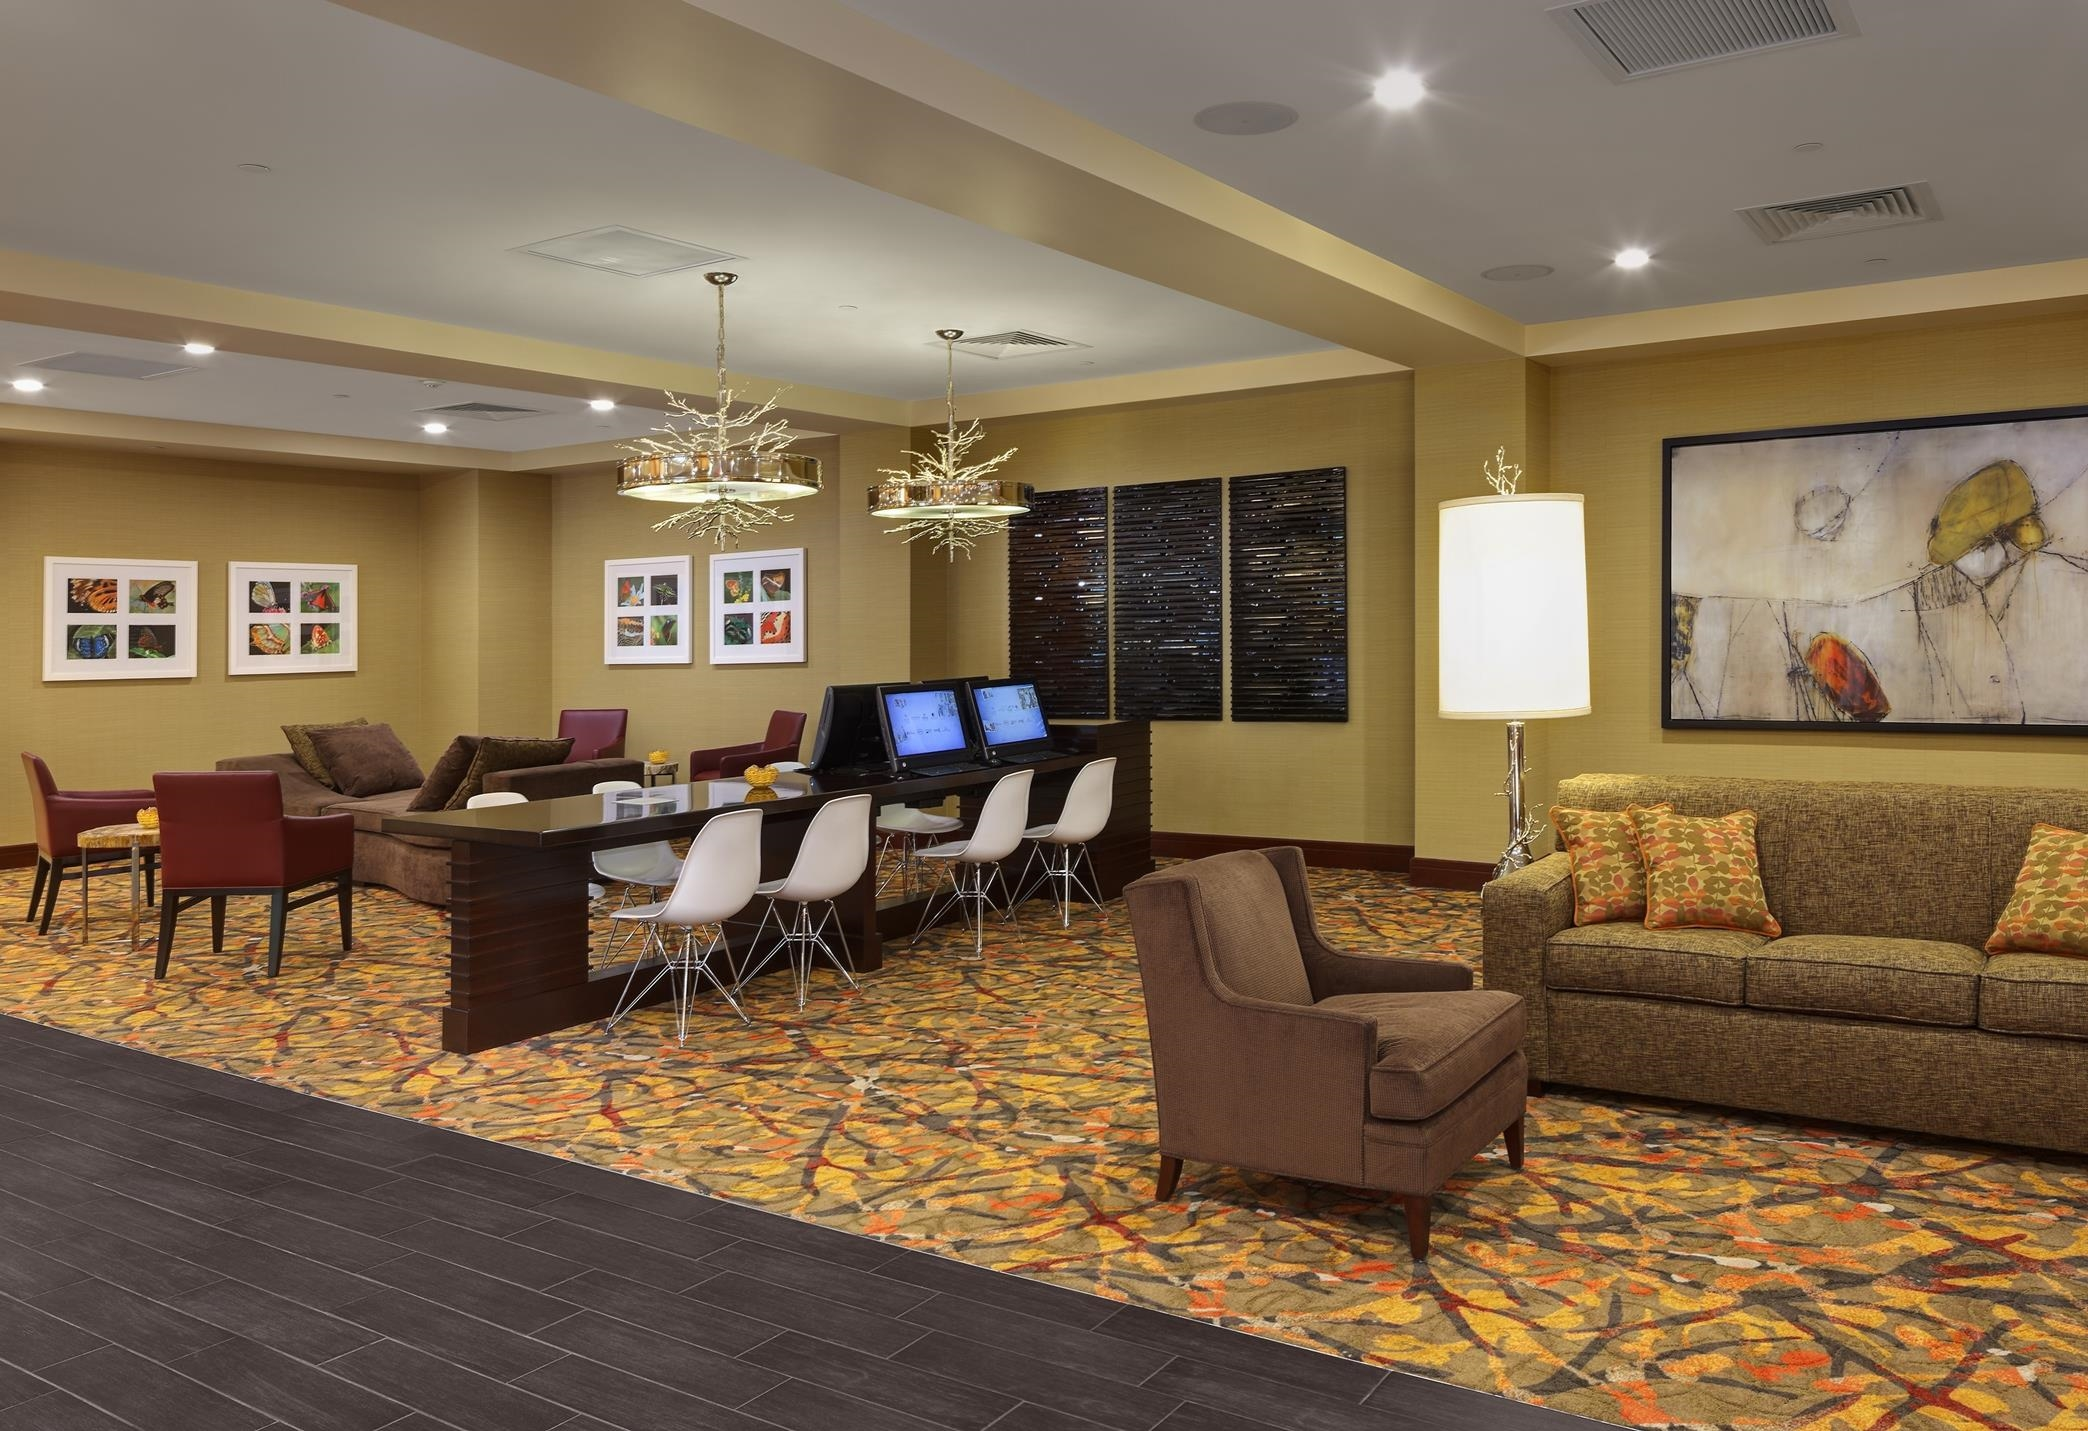 Doubletree By Hilton Hotel St Louis Chesterfield At 16625 Swingley Ridge Road Chesterfield